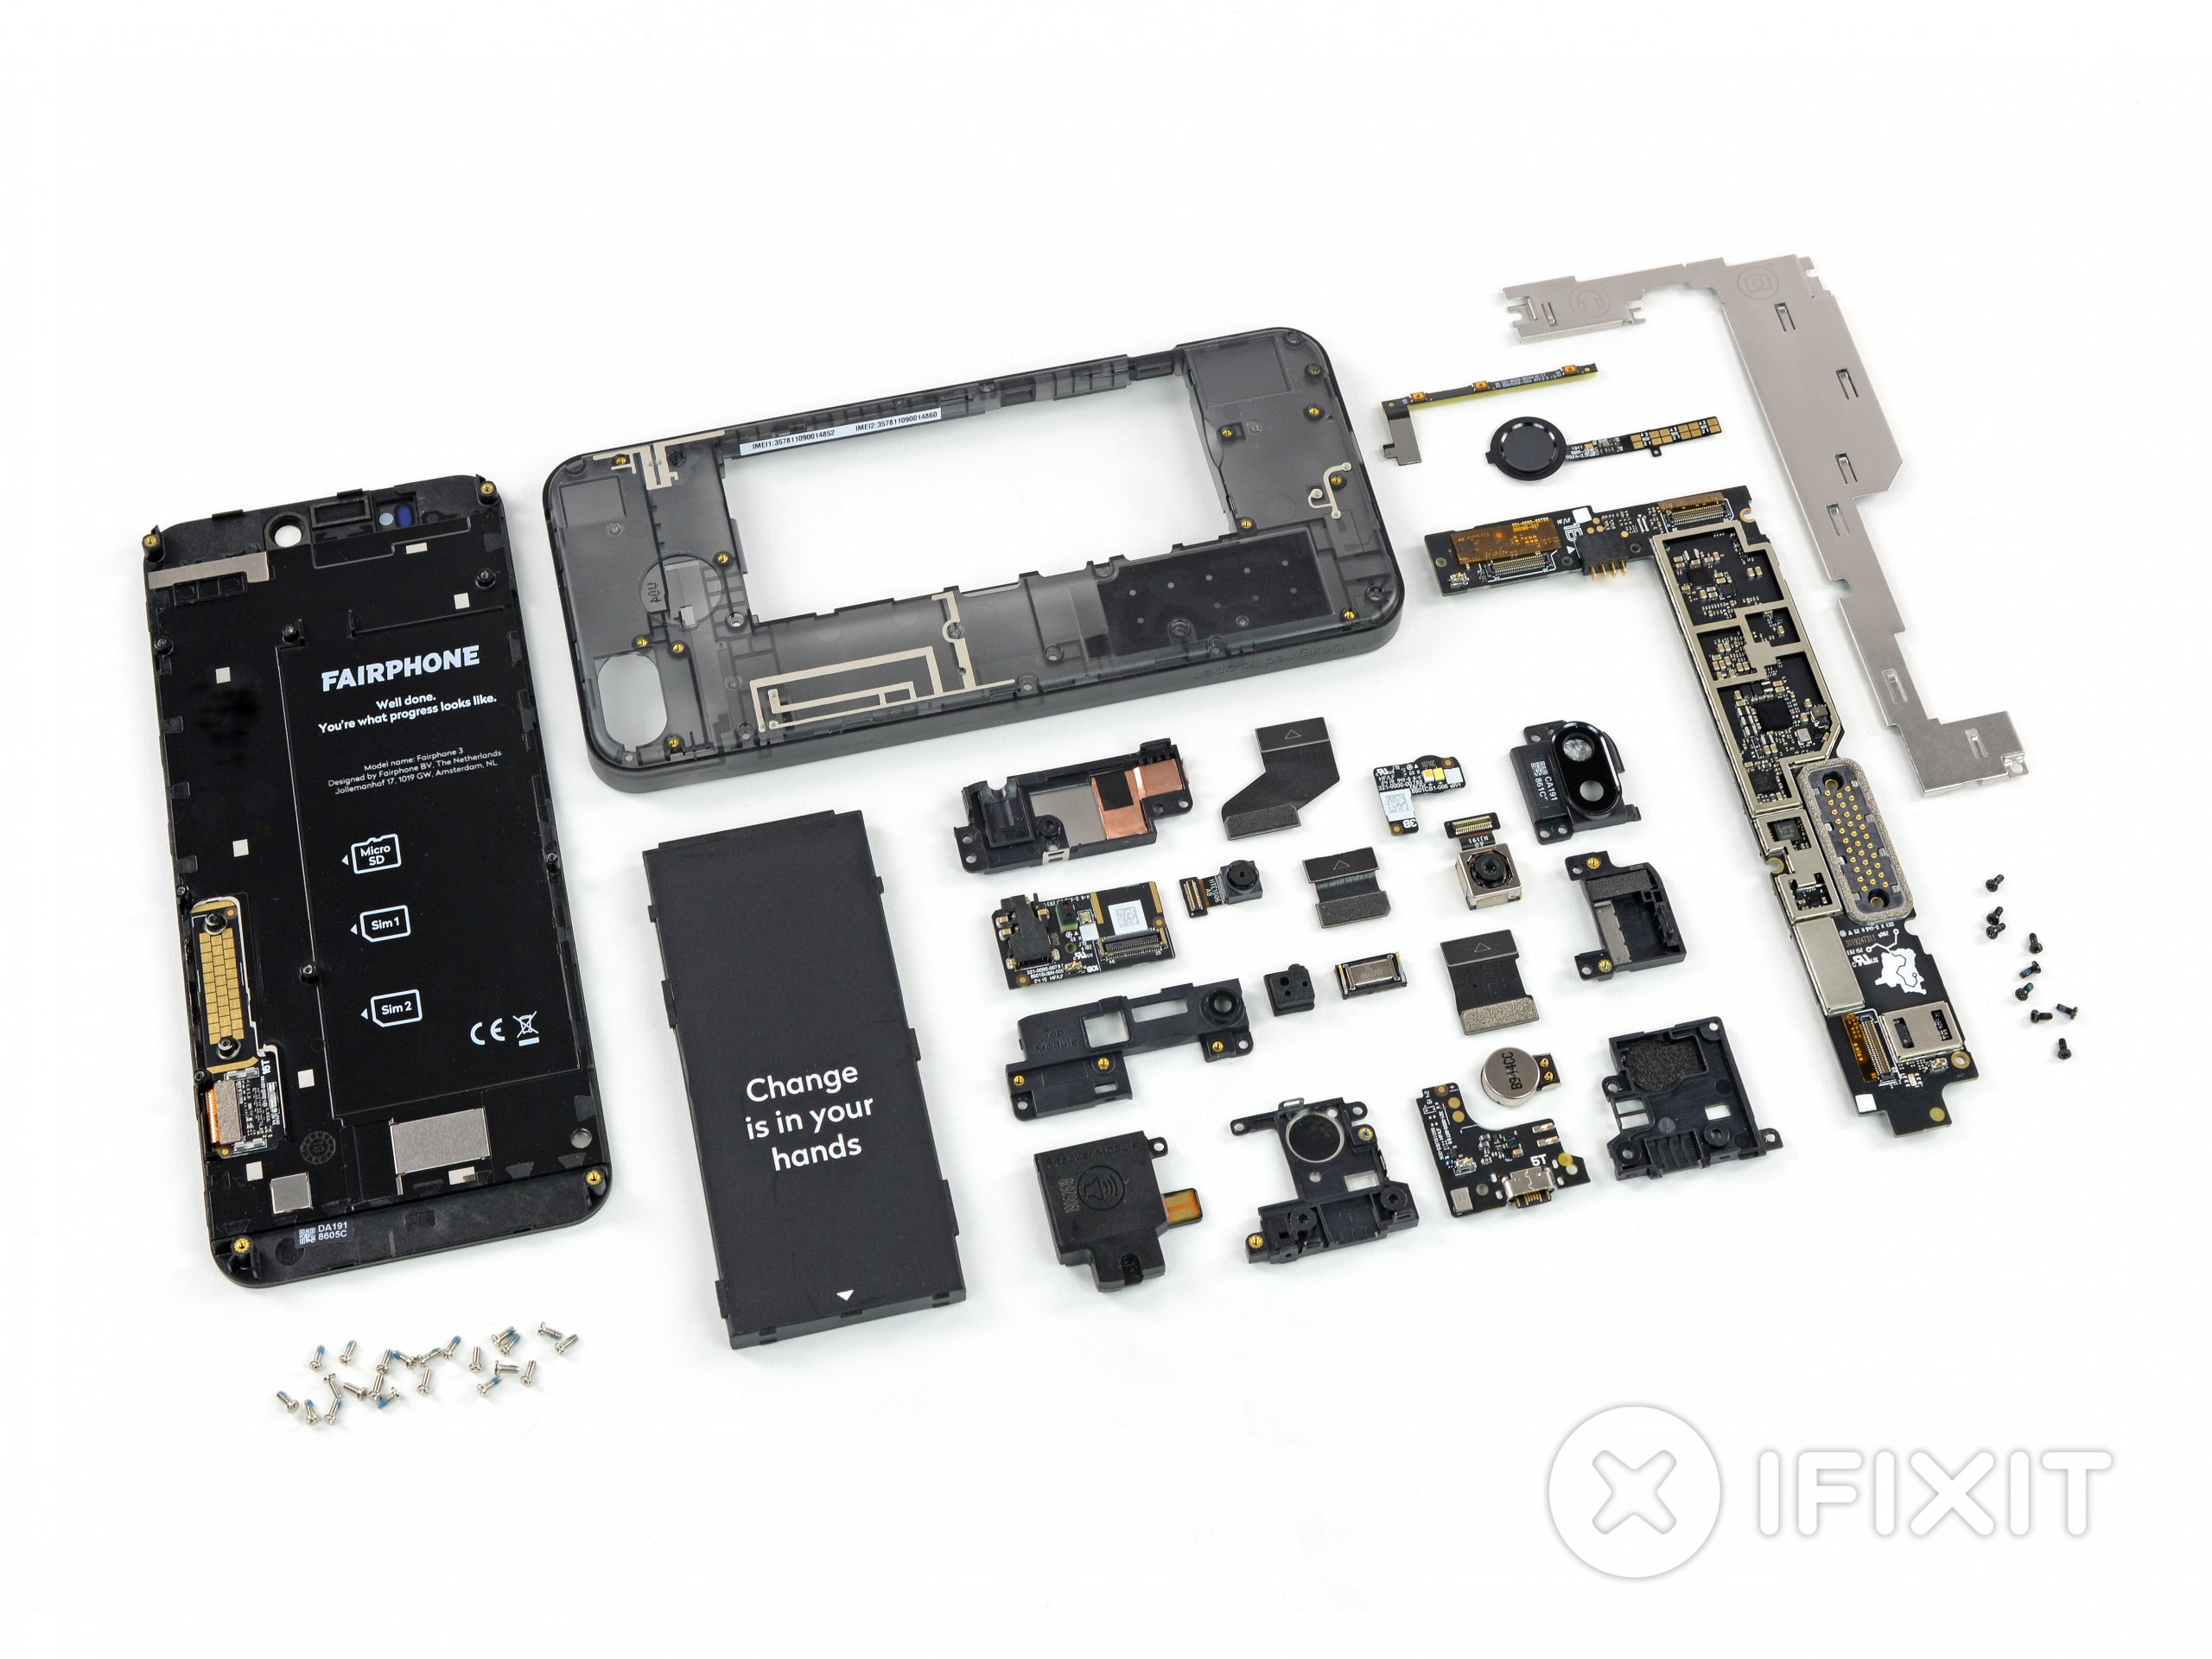 Fairphone 3 teardown layout